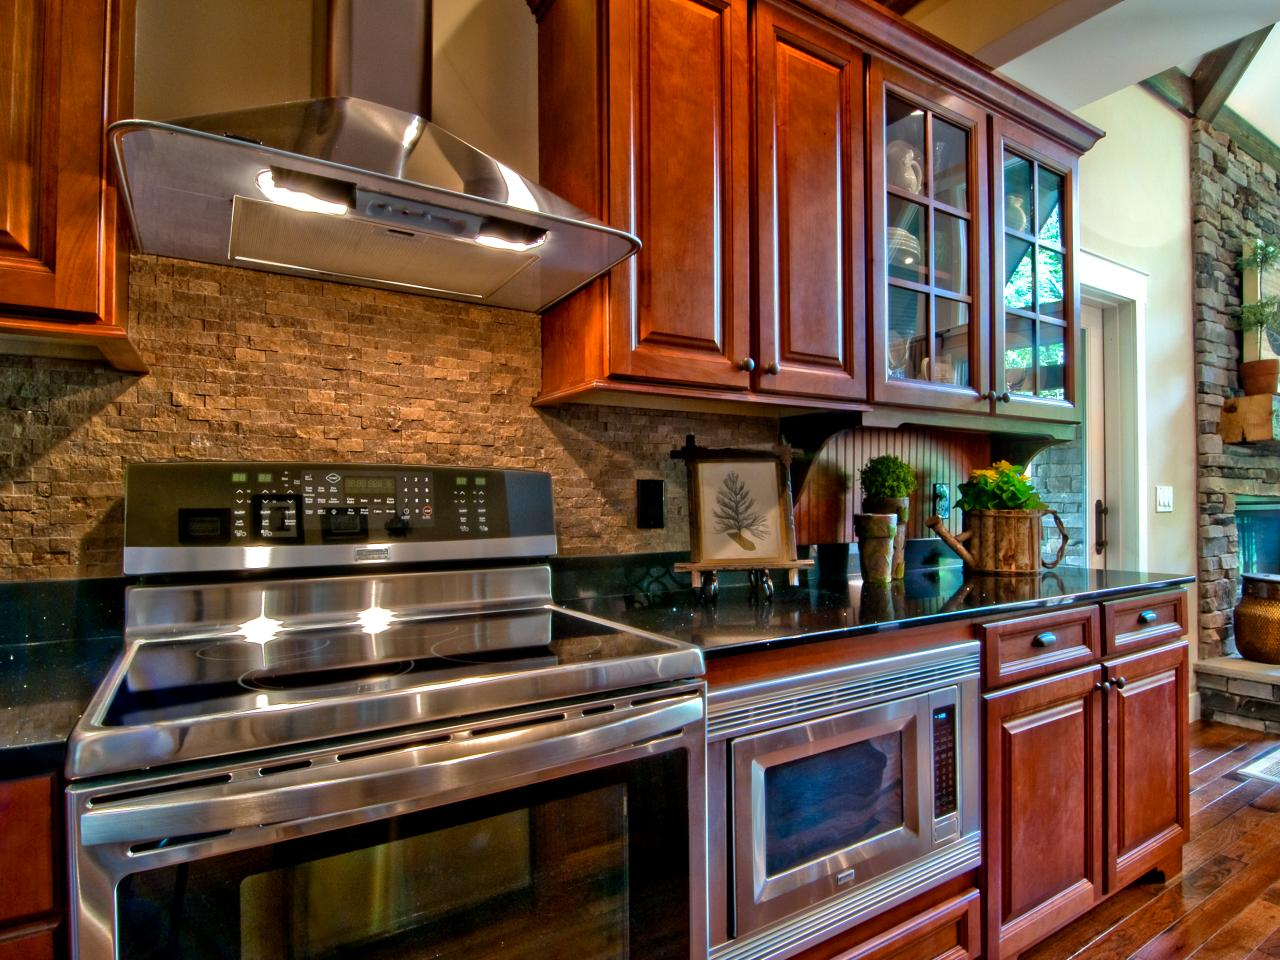 Tips For Hanging Cabinets: